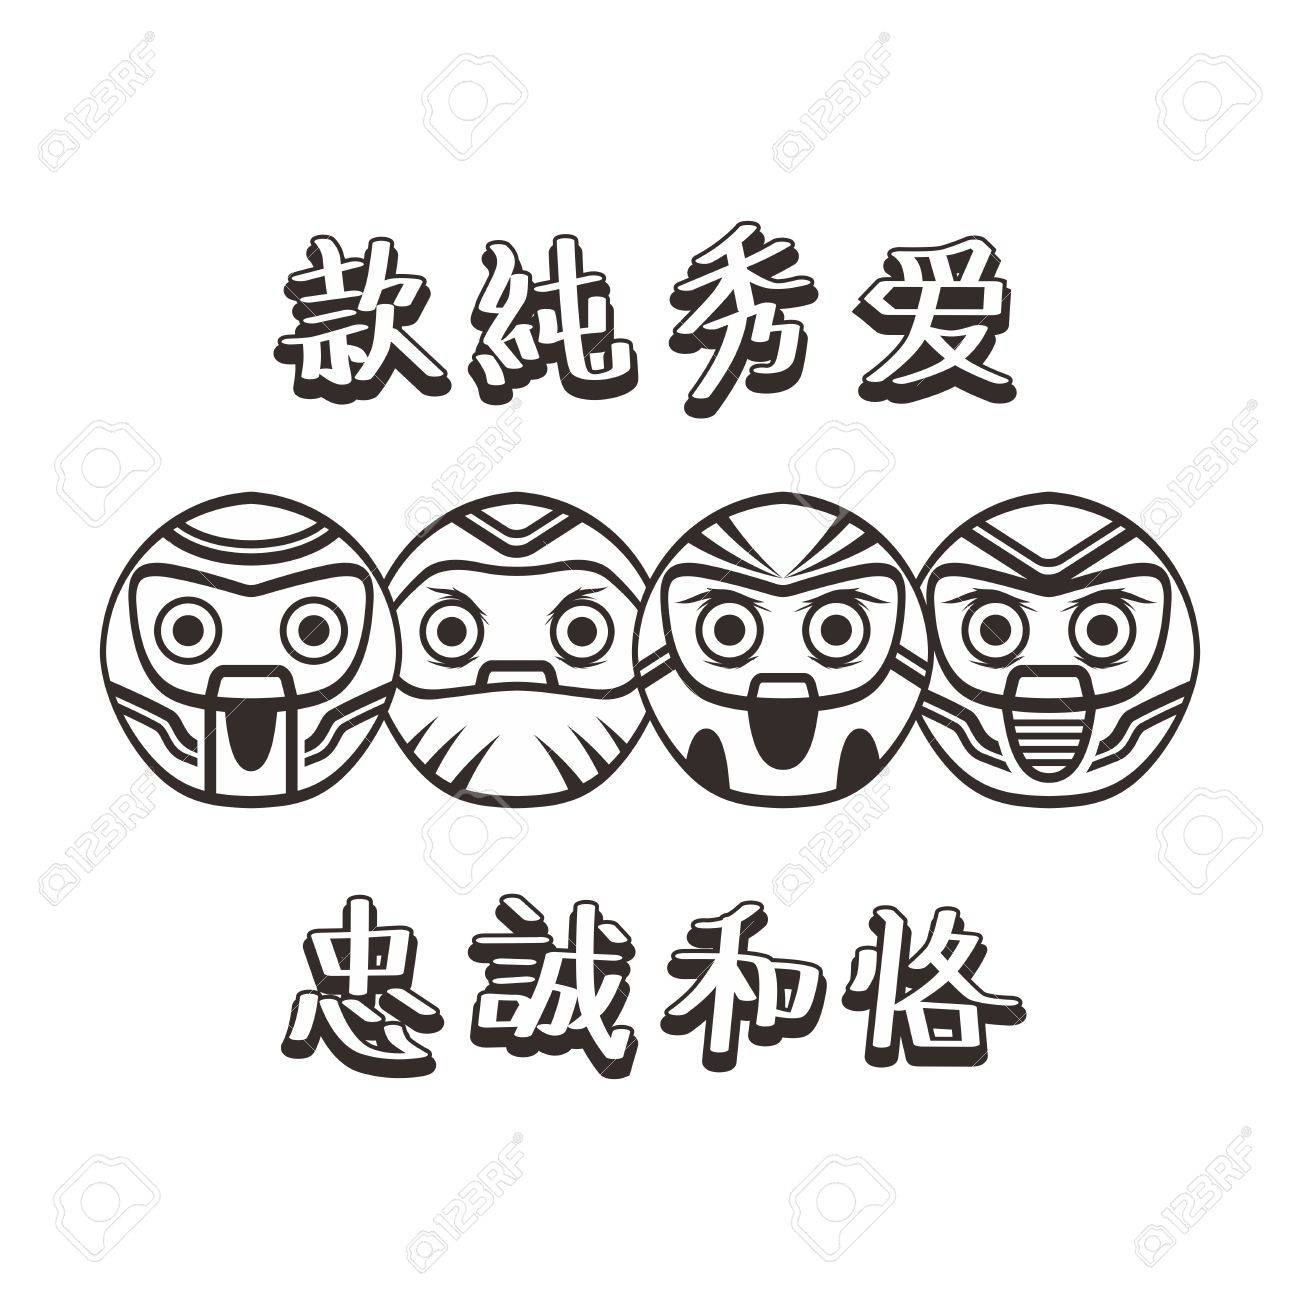 Daruma Doll Kanji Japanese Art Royalty Free Cliparts